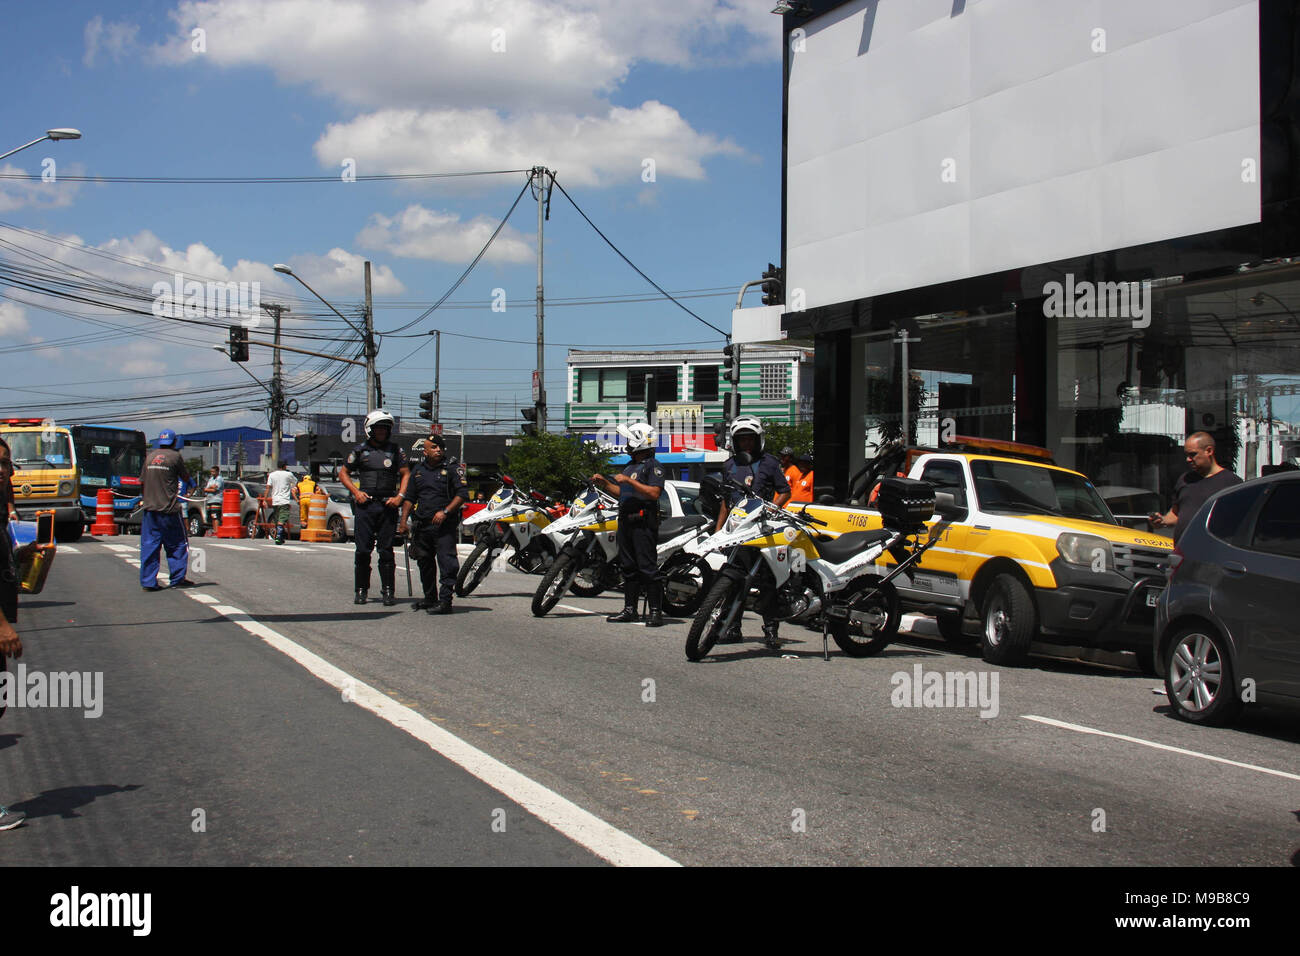 Brazil. 24th Mar, 2018. Local police confiscates foods, drinks and products during the event at Jose Carlos Pace Autodrome Interlagos. There were many policemen with their motorcycles, cars at the local to maintain order. Credit: Niyi Fote/Pacific Press/Alamy Live News - Stock Image